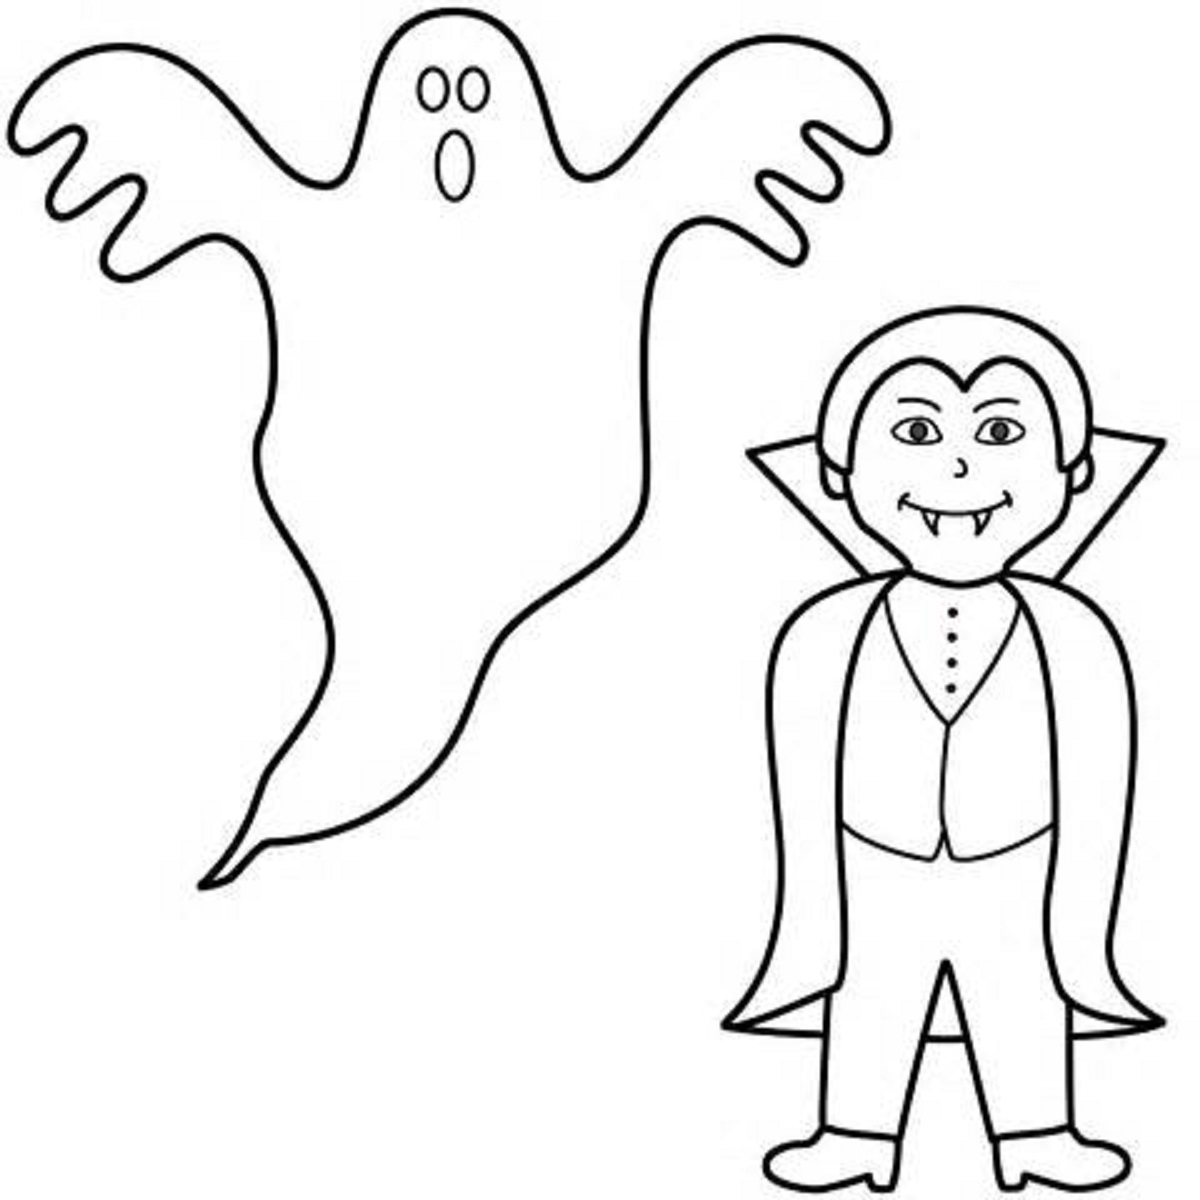 Ghost Drawing For Kids at GetDrawings.com | Free for personal use ...